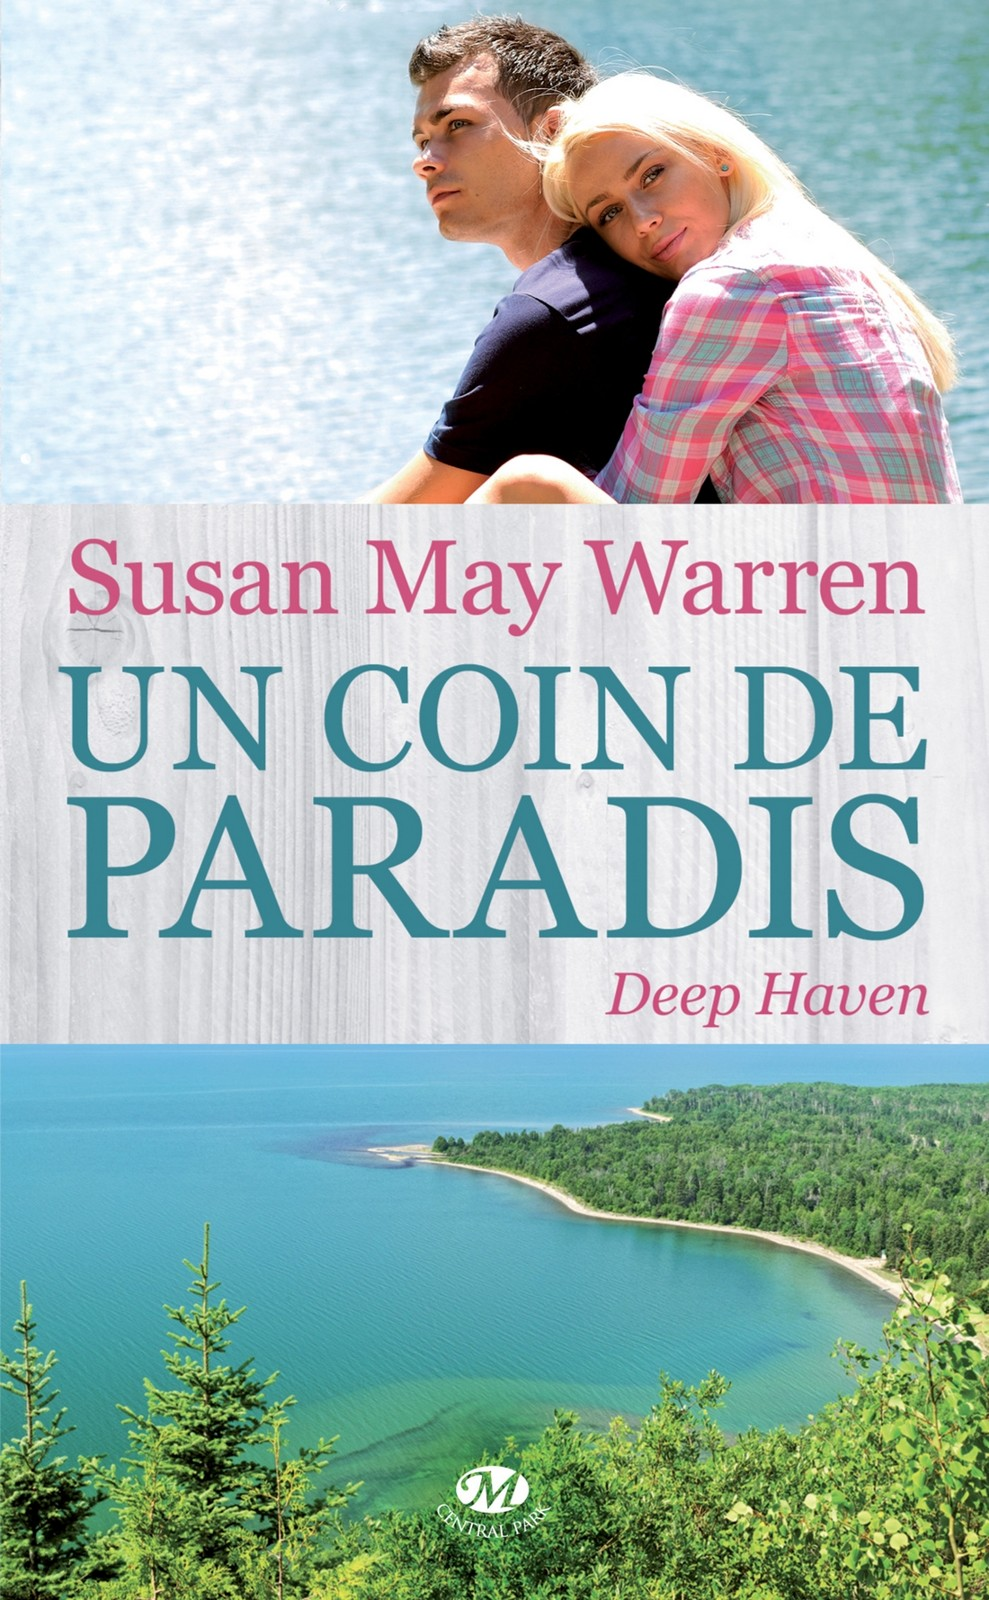 Susan May Warren - Un coin de paradis